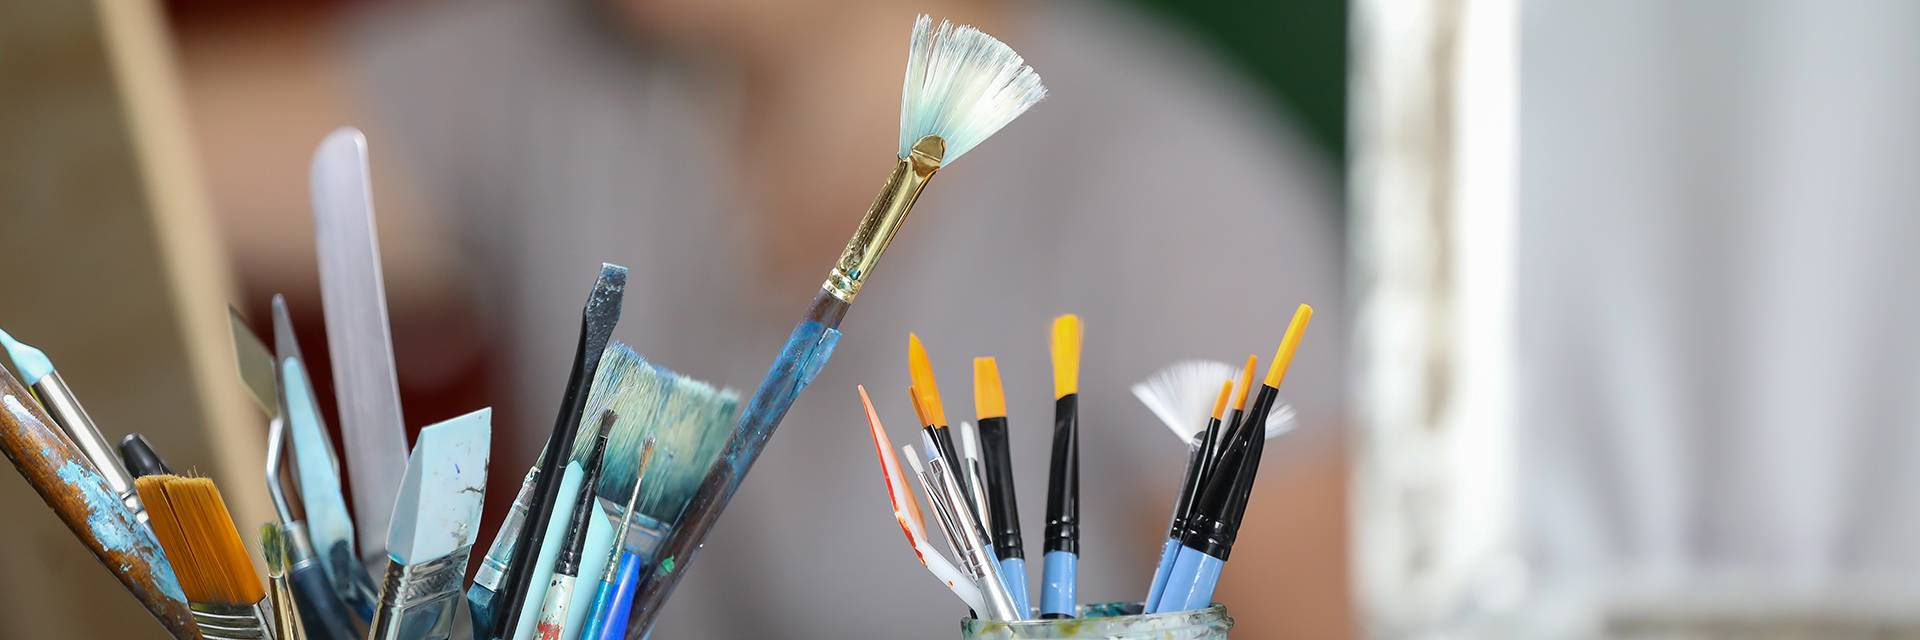 visual arts paint brushes